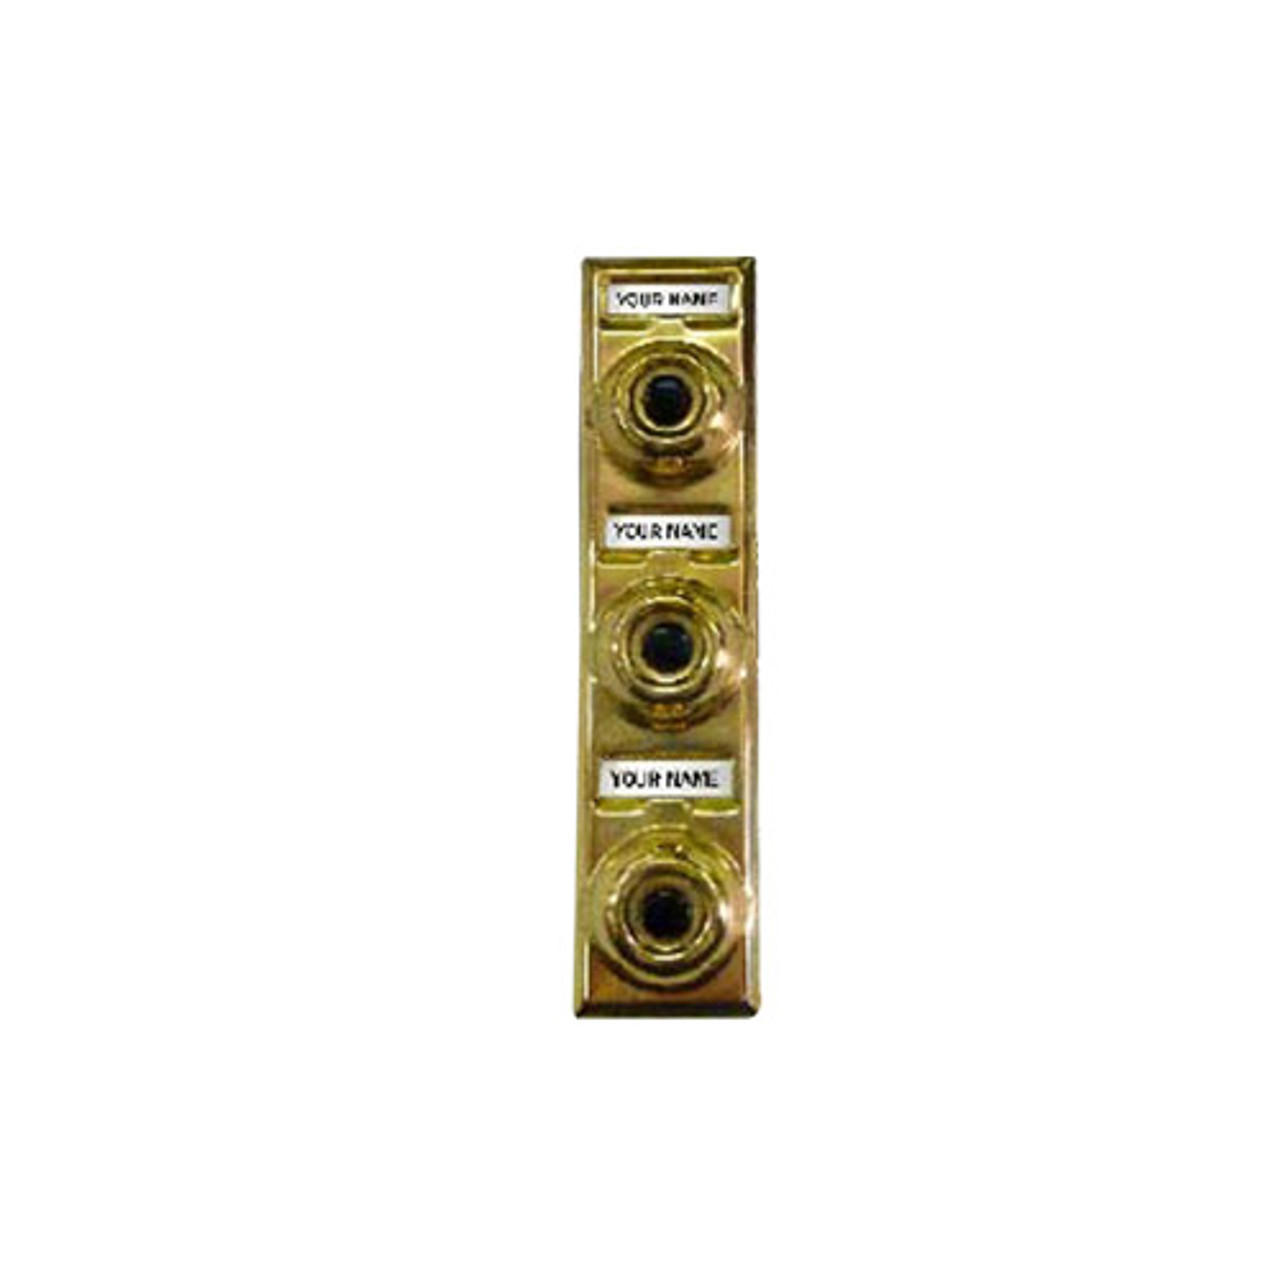 94P Trine Push 3 Button Multi-Family in Polished Solid Brass Finish